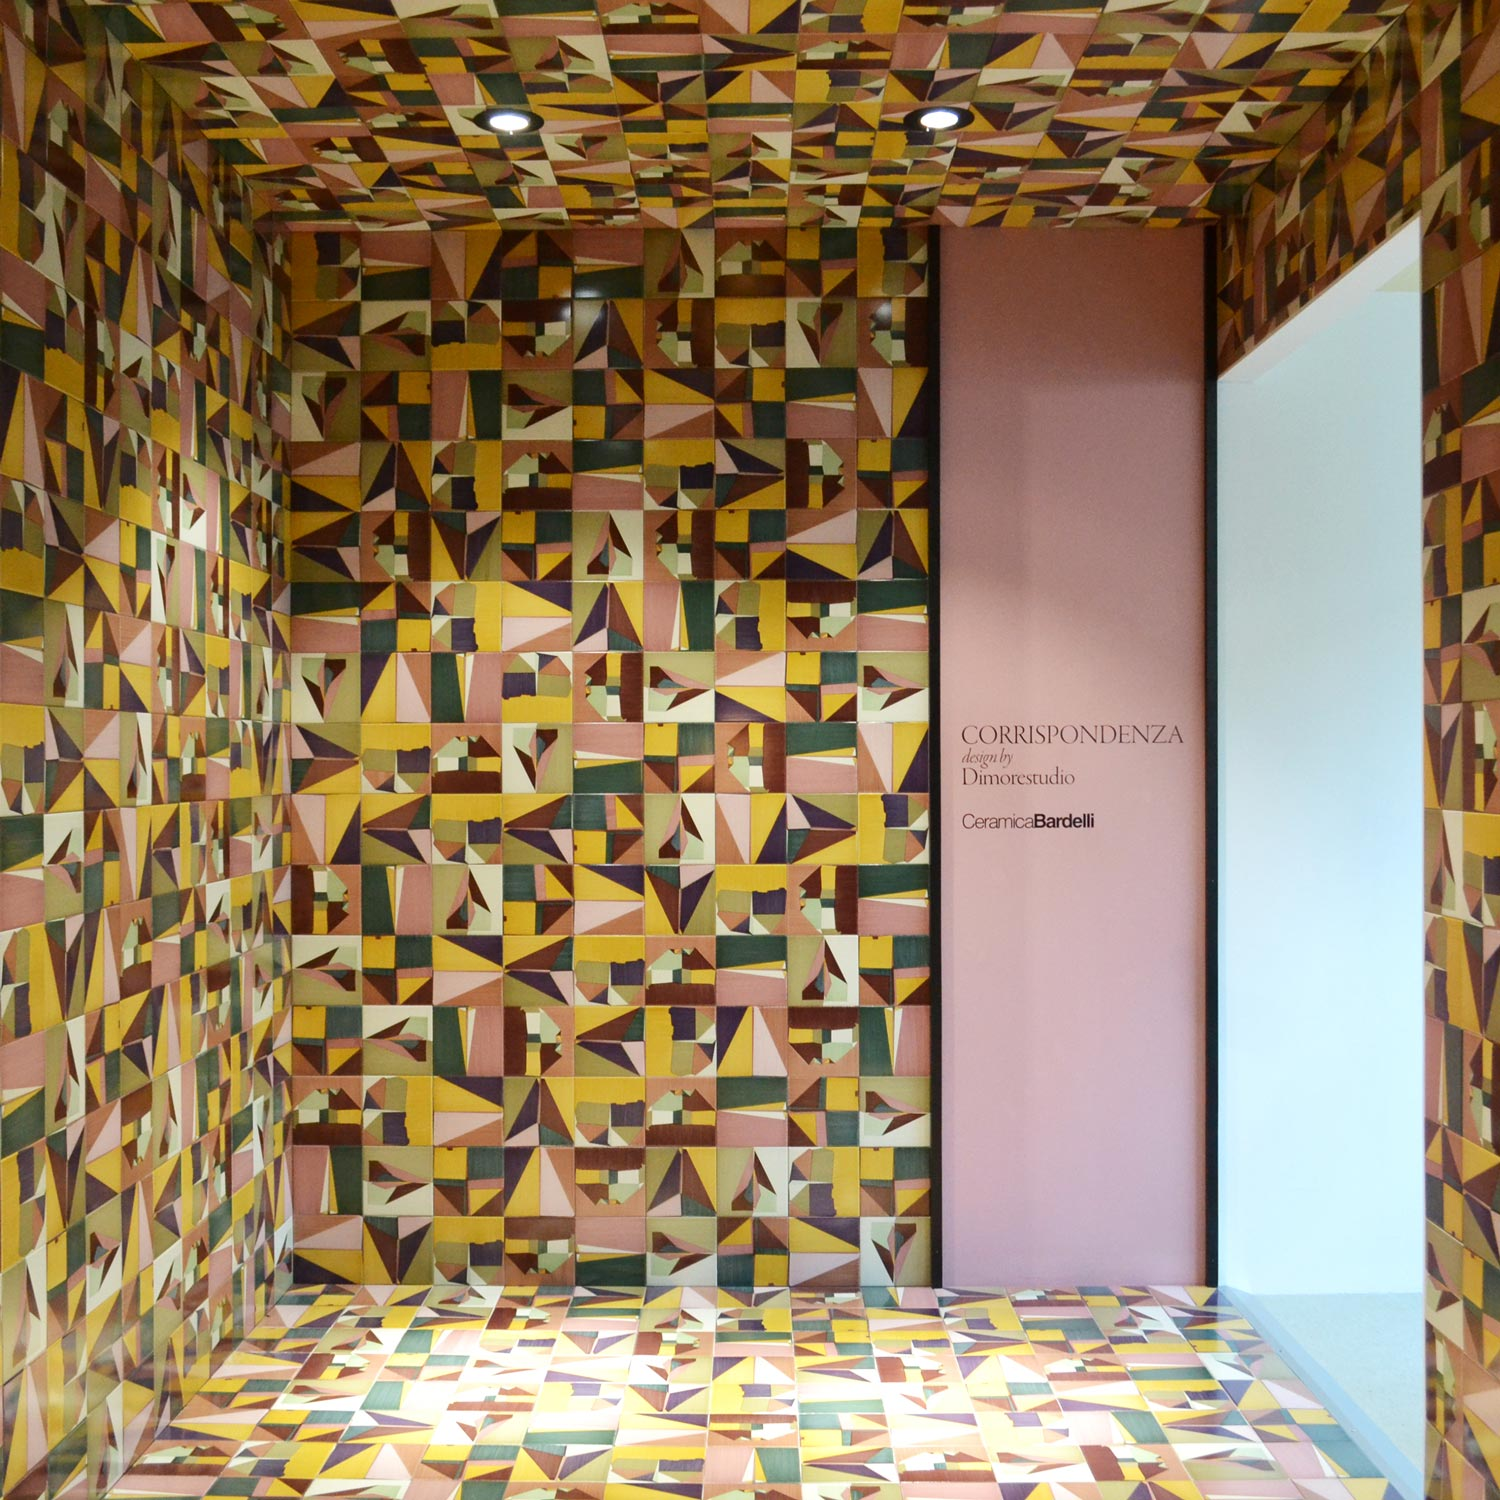 Casum Best Design 2017 Cersaie Edition: coverings at Ceramica Bardelli booth